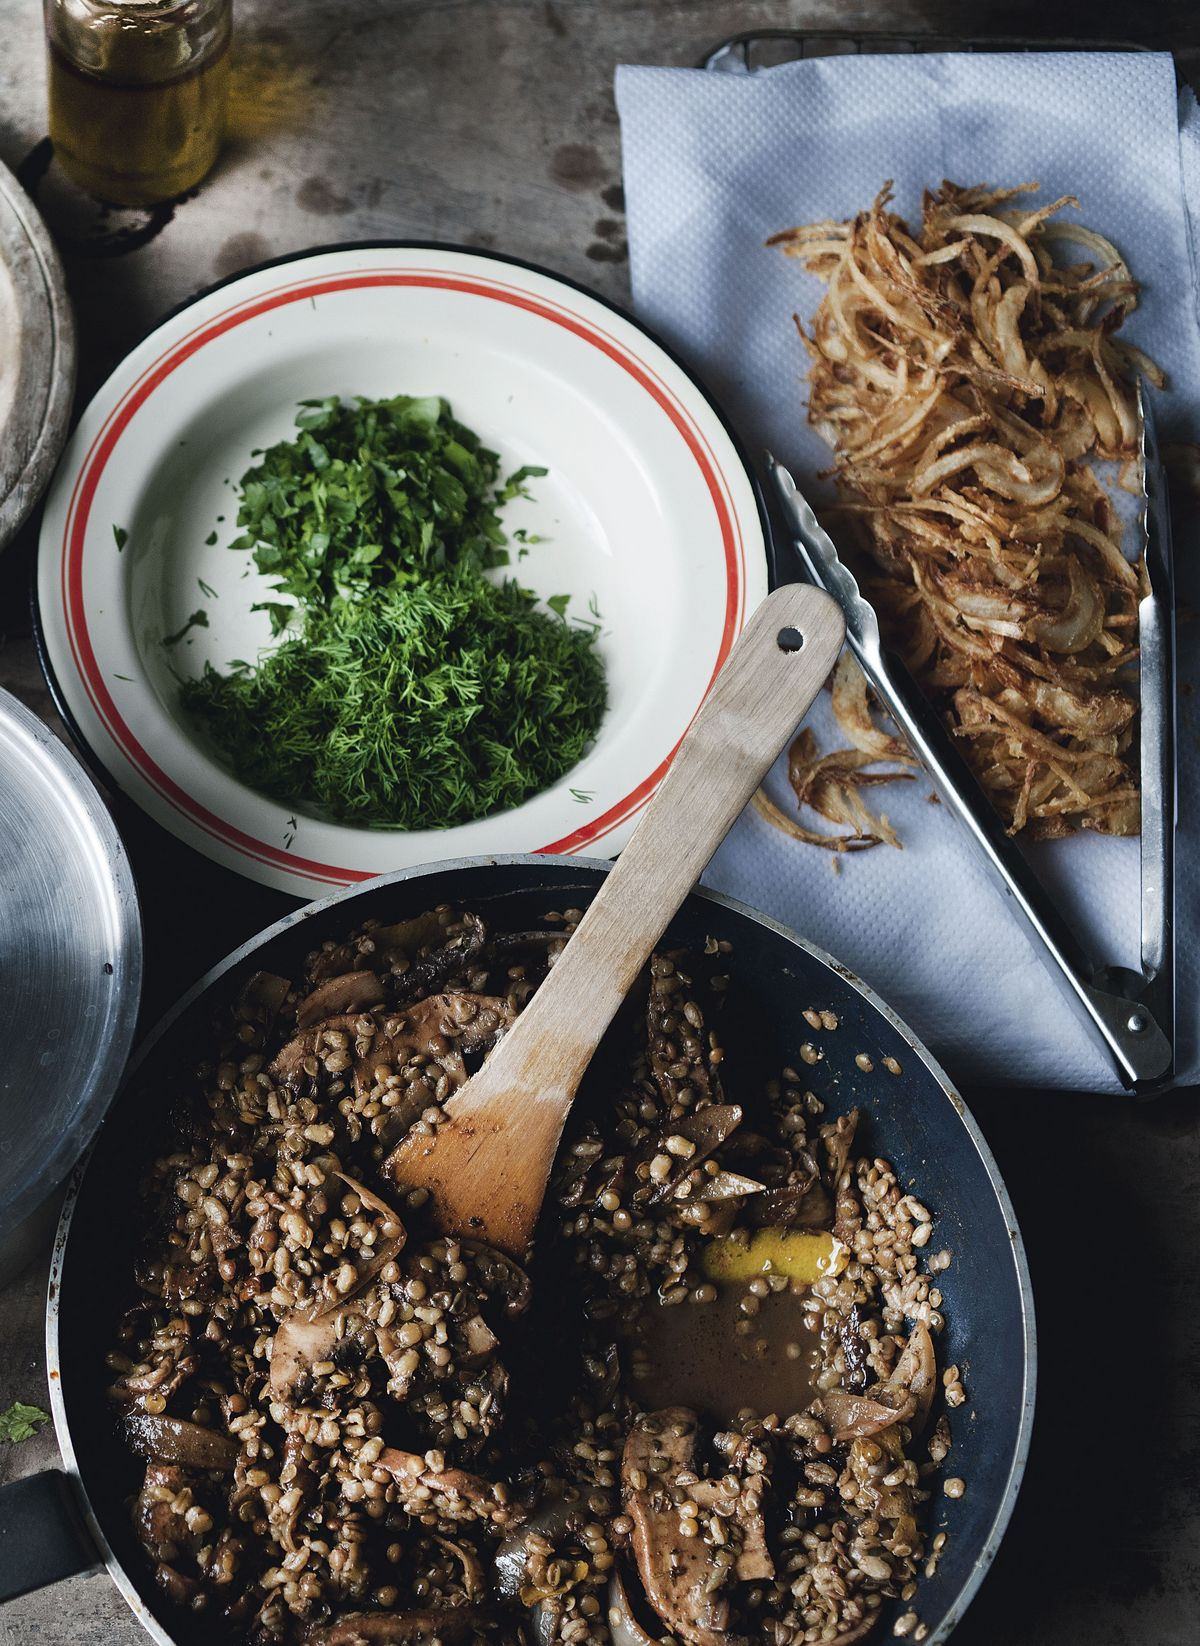 Yotam Ottolenghi's Pot Barley and Lentils with Mushrooms and Sweet Spices